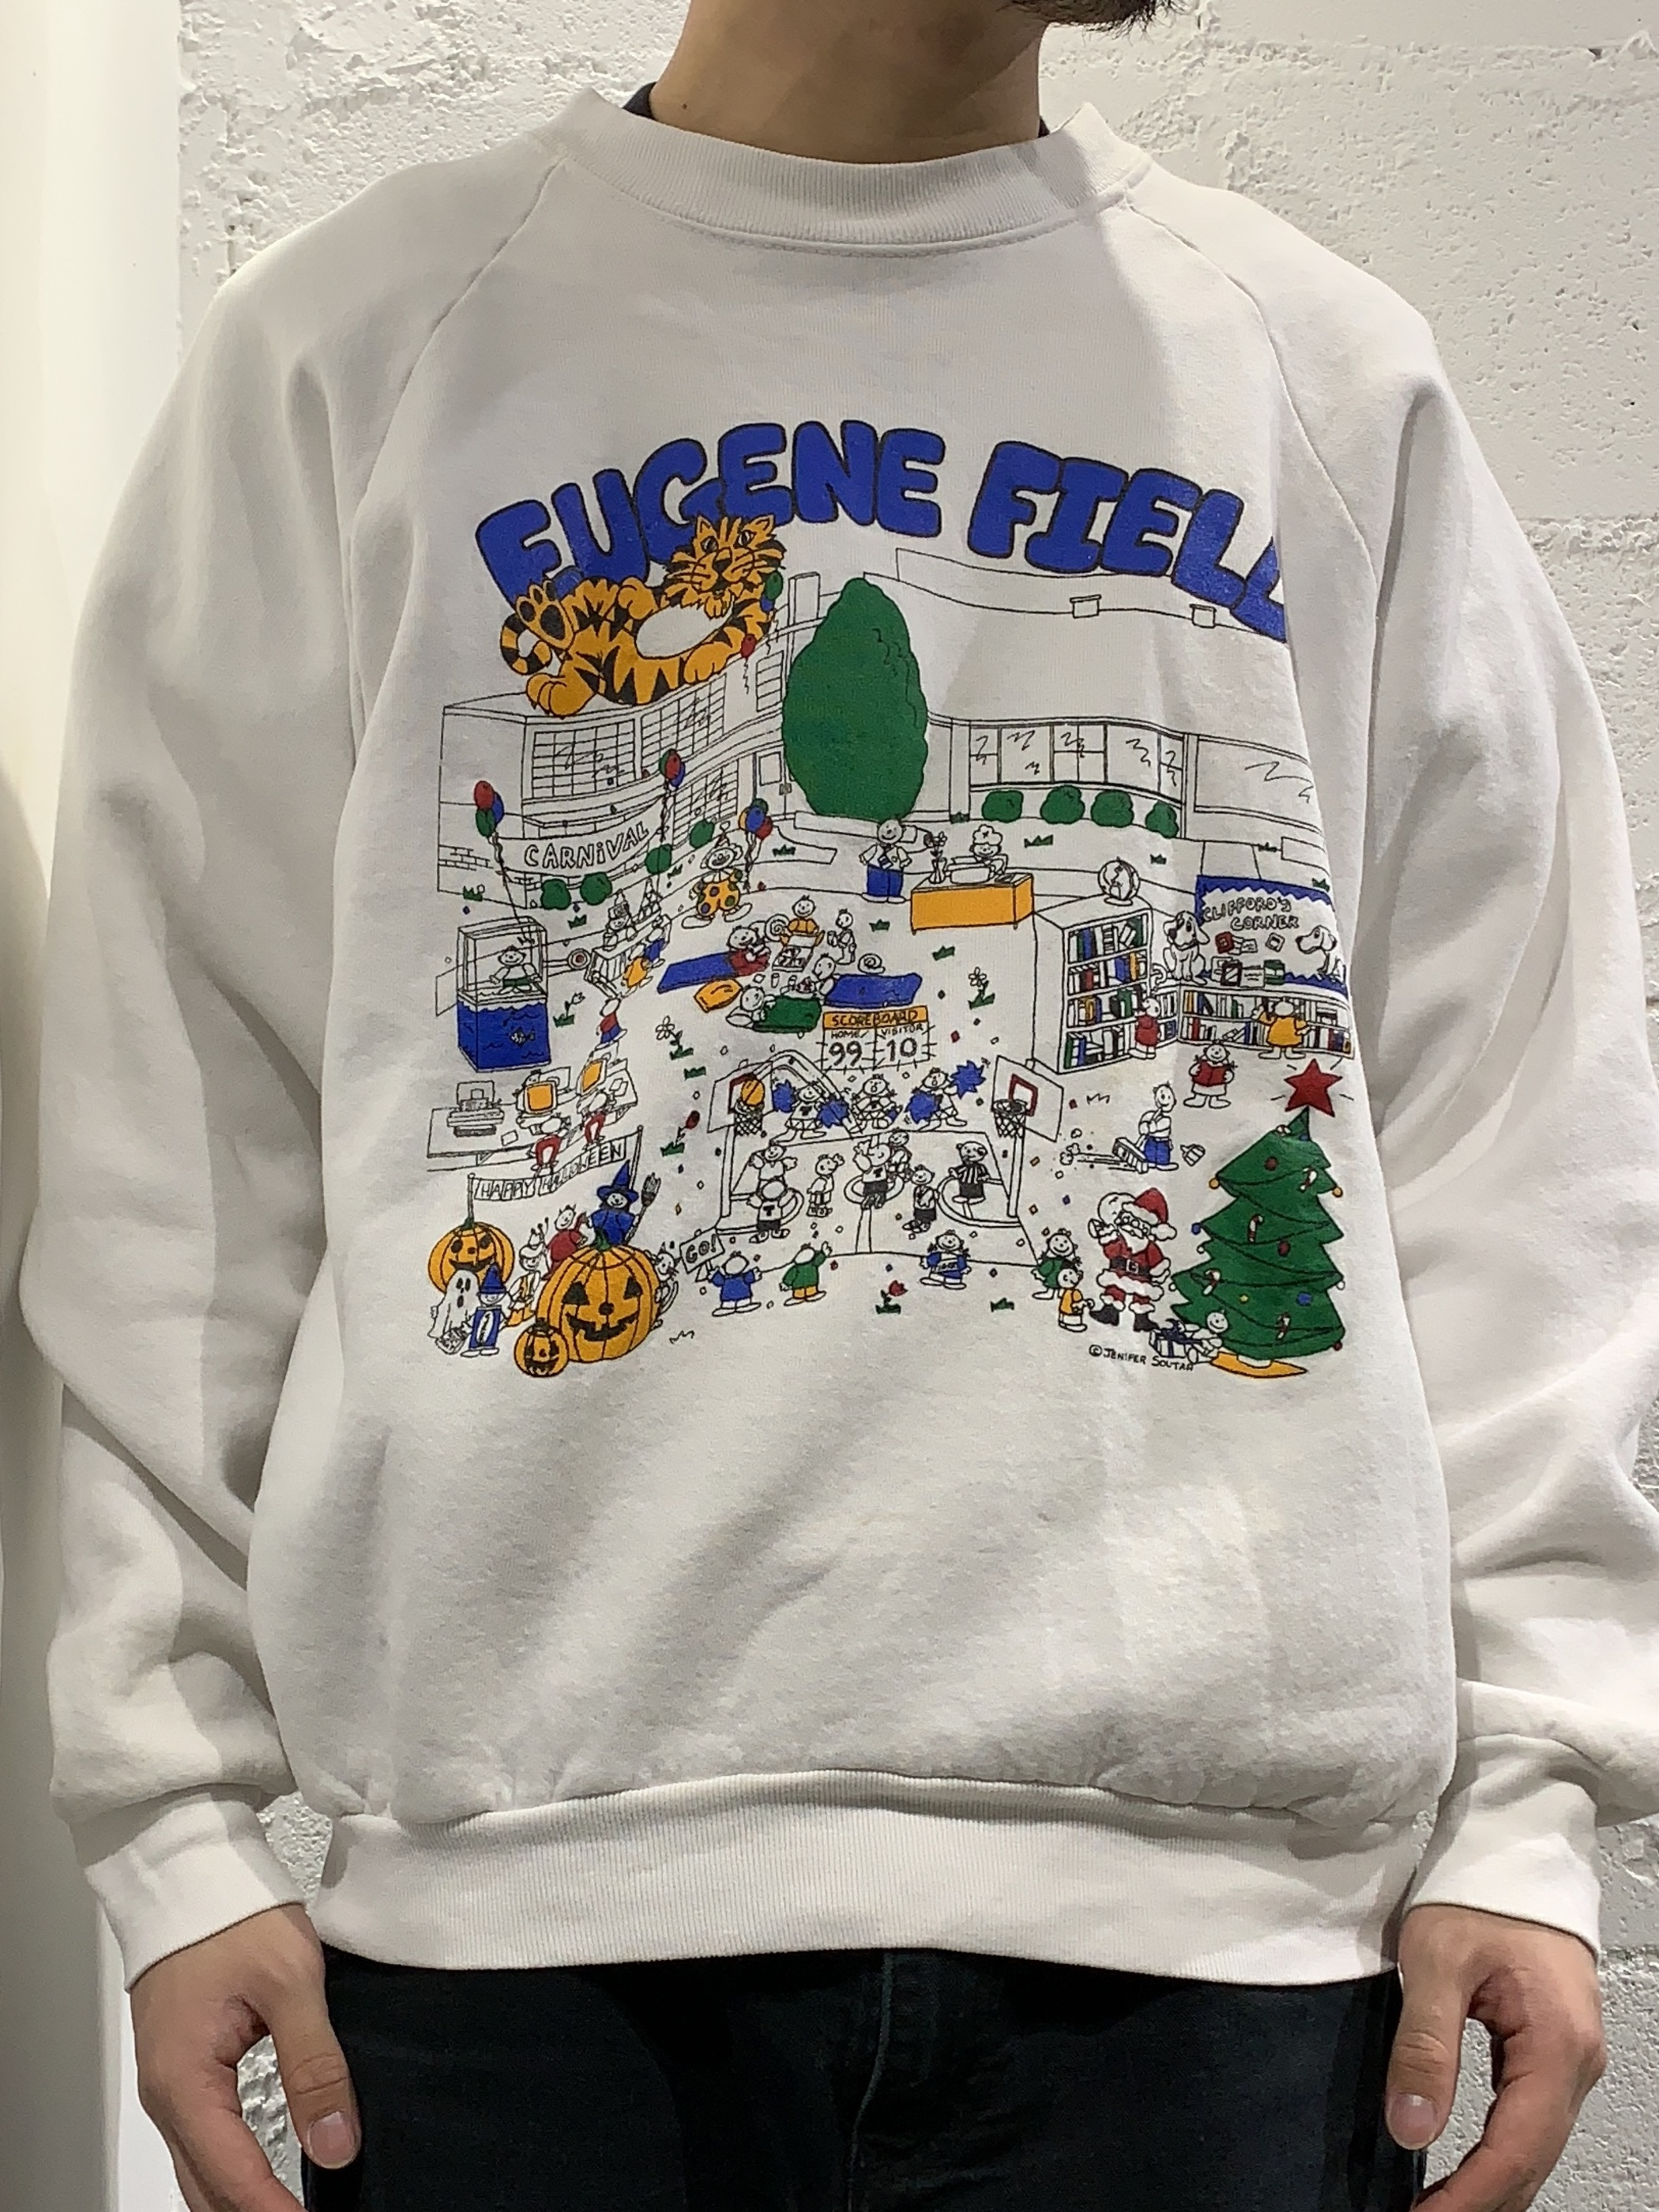 80's fruit of the loom cotton sweat